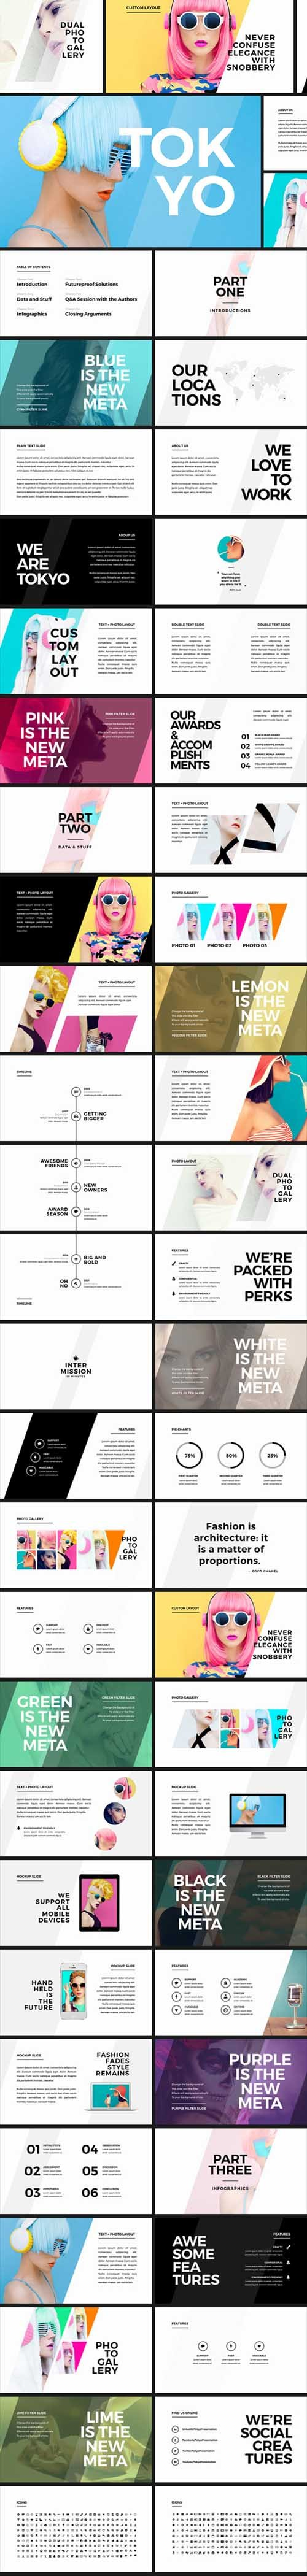 Tokyo - Creative PowerPoint Template 17666020